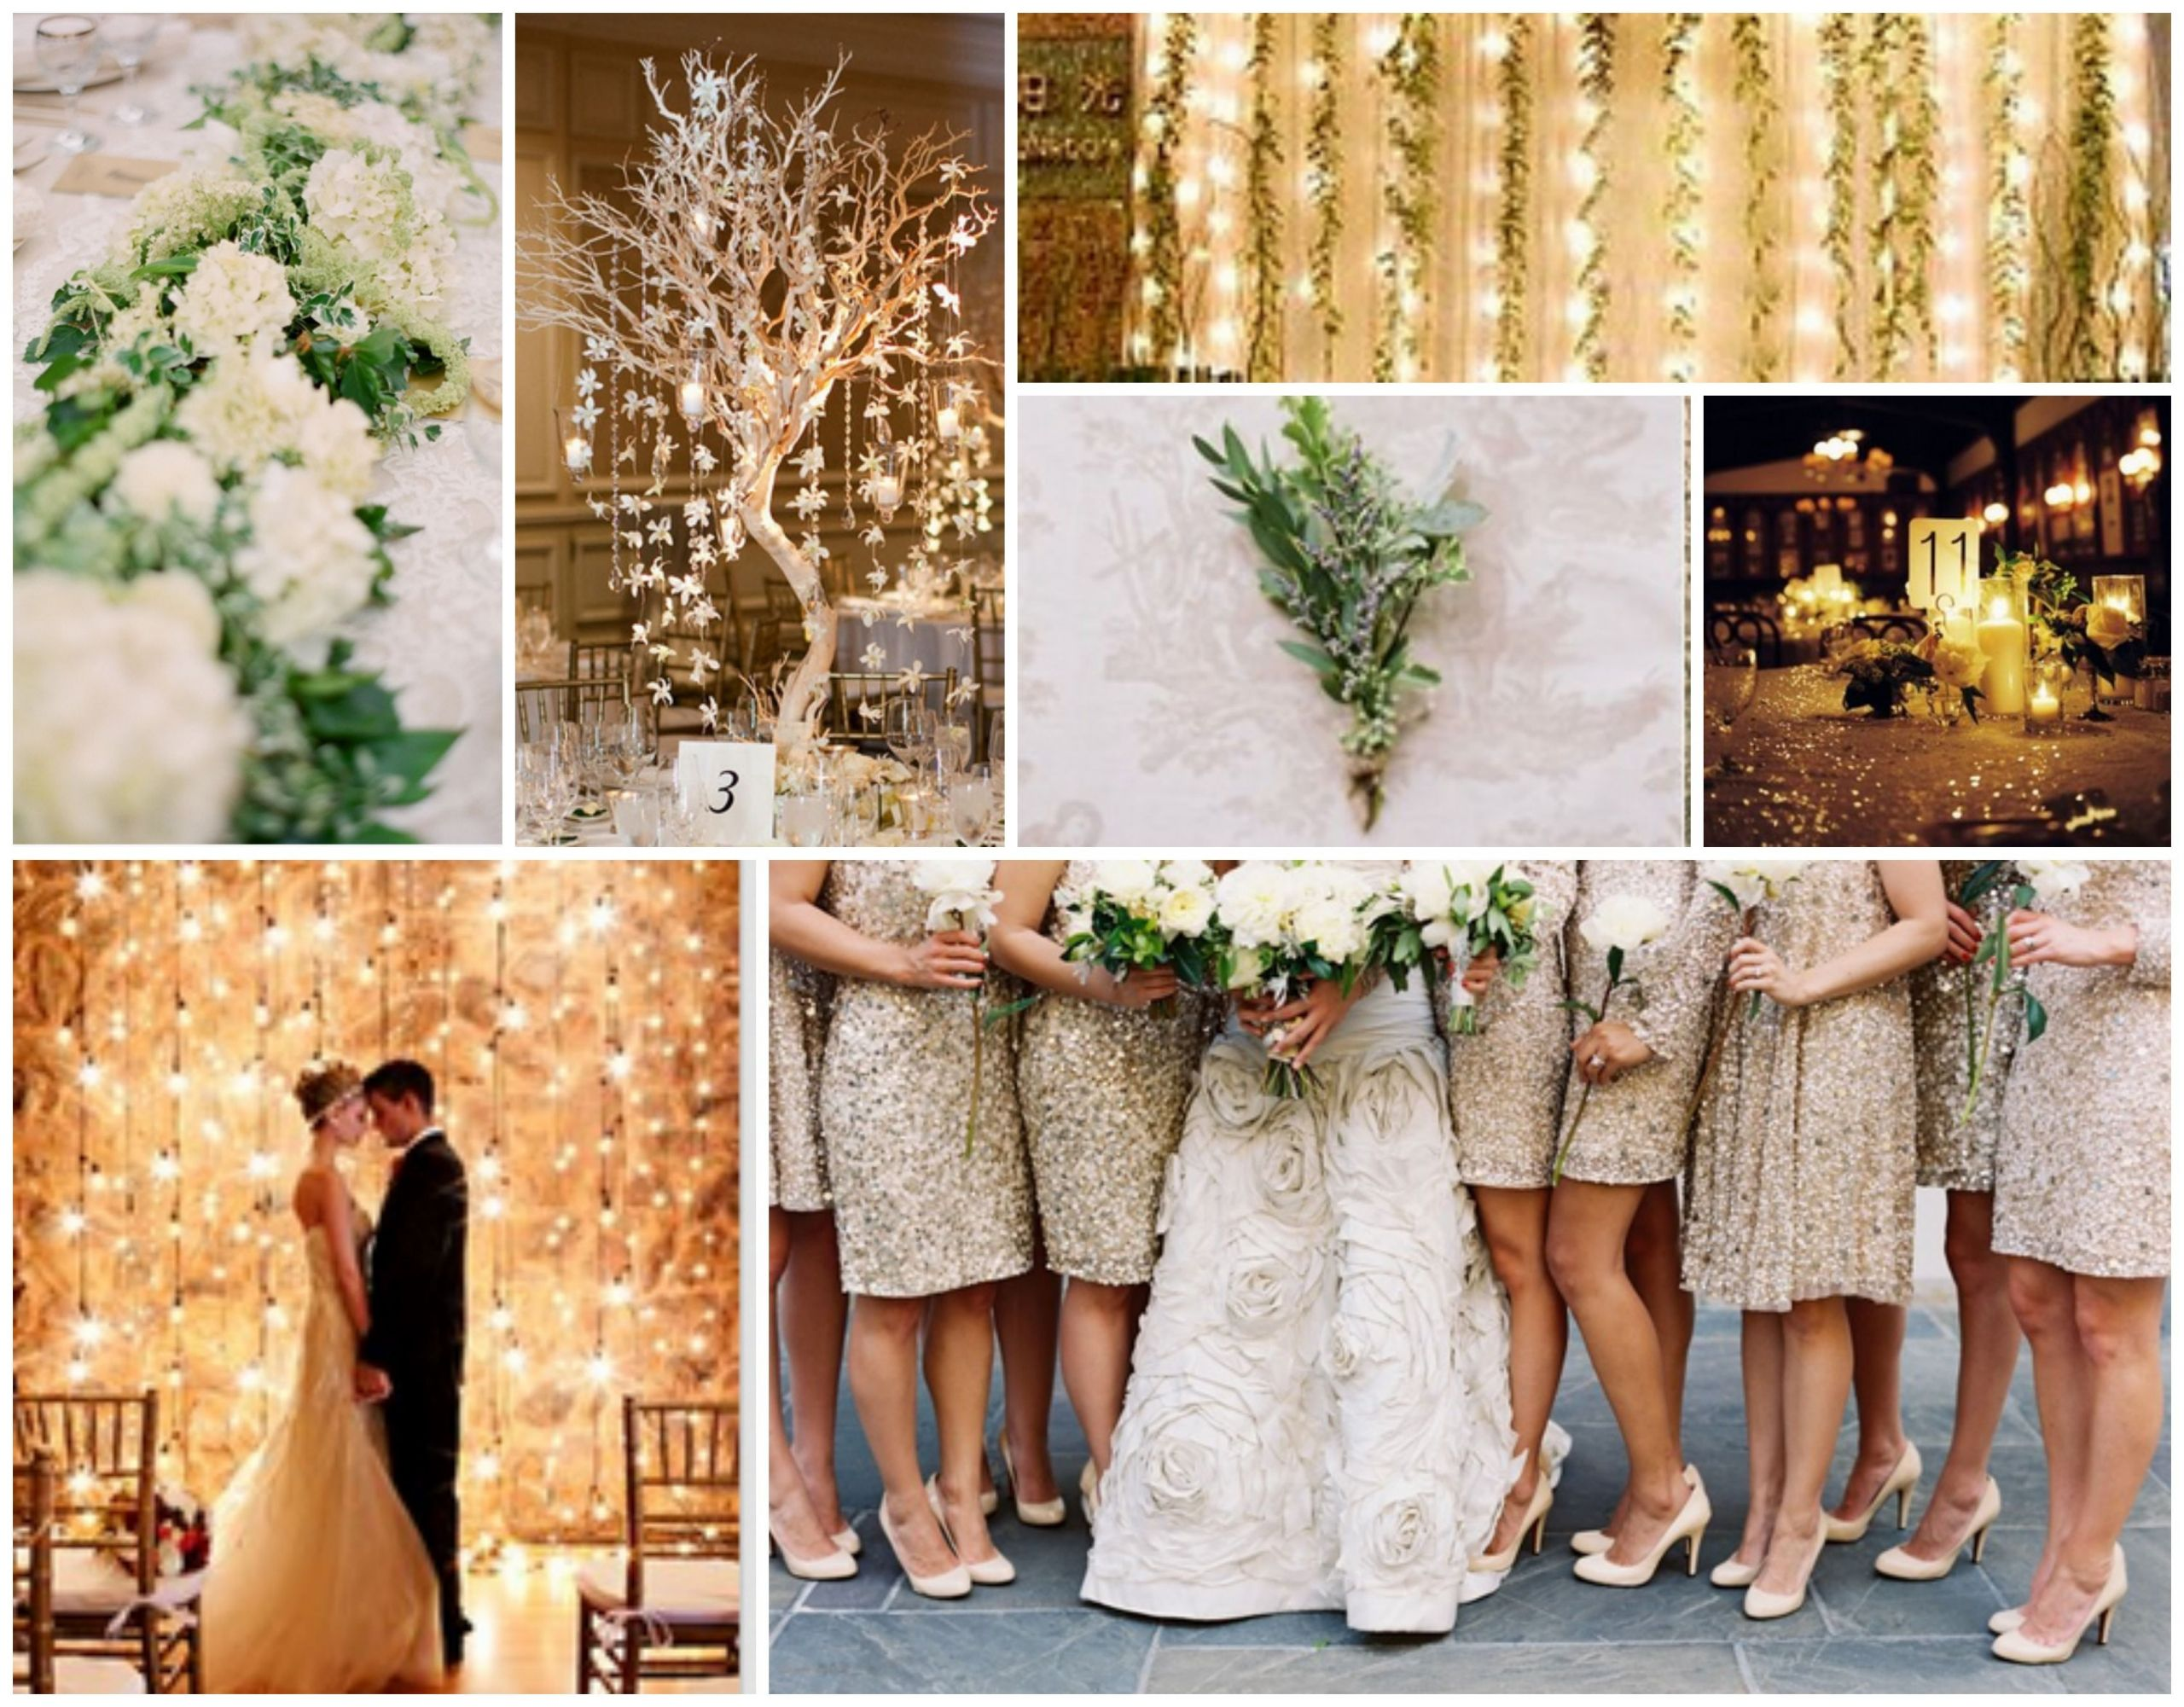 Gold Themed Wedding  Our Wedding theme eam gold green